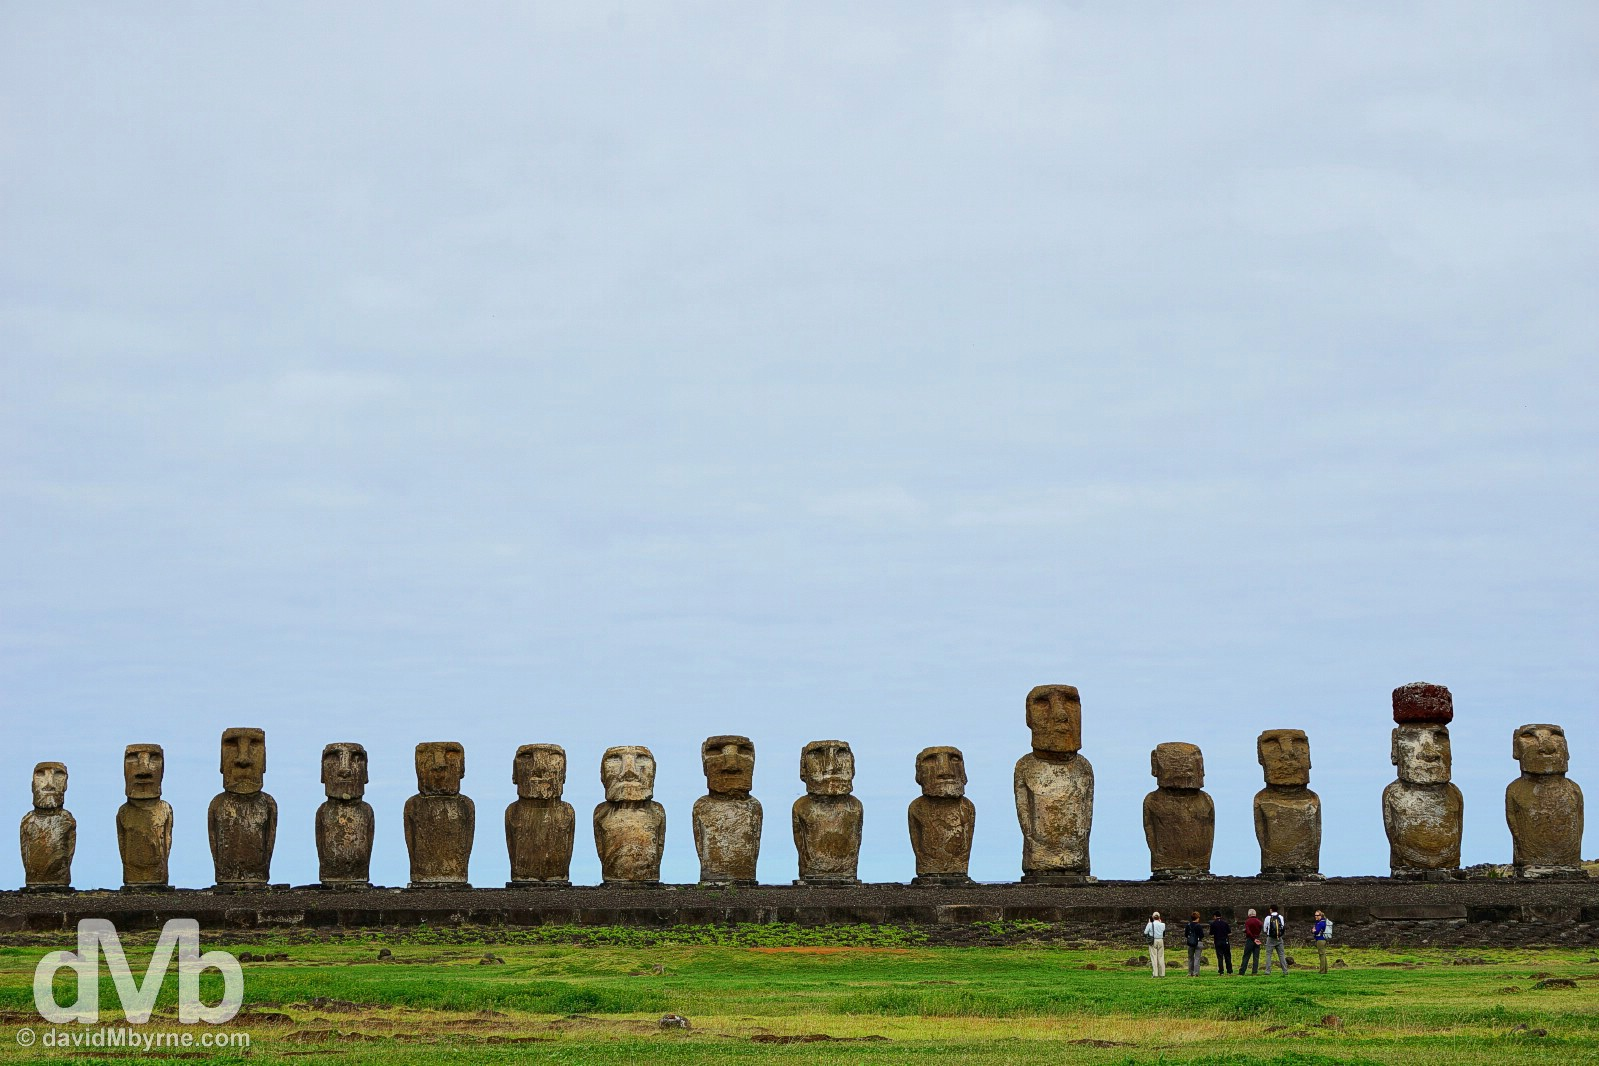 The moai of Ahu Tongariki on Easter Island, Chile. September 29, 2016.